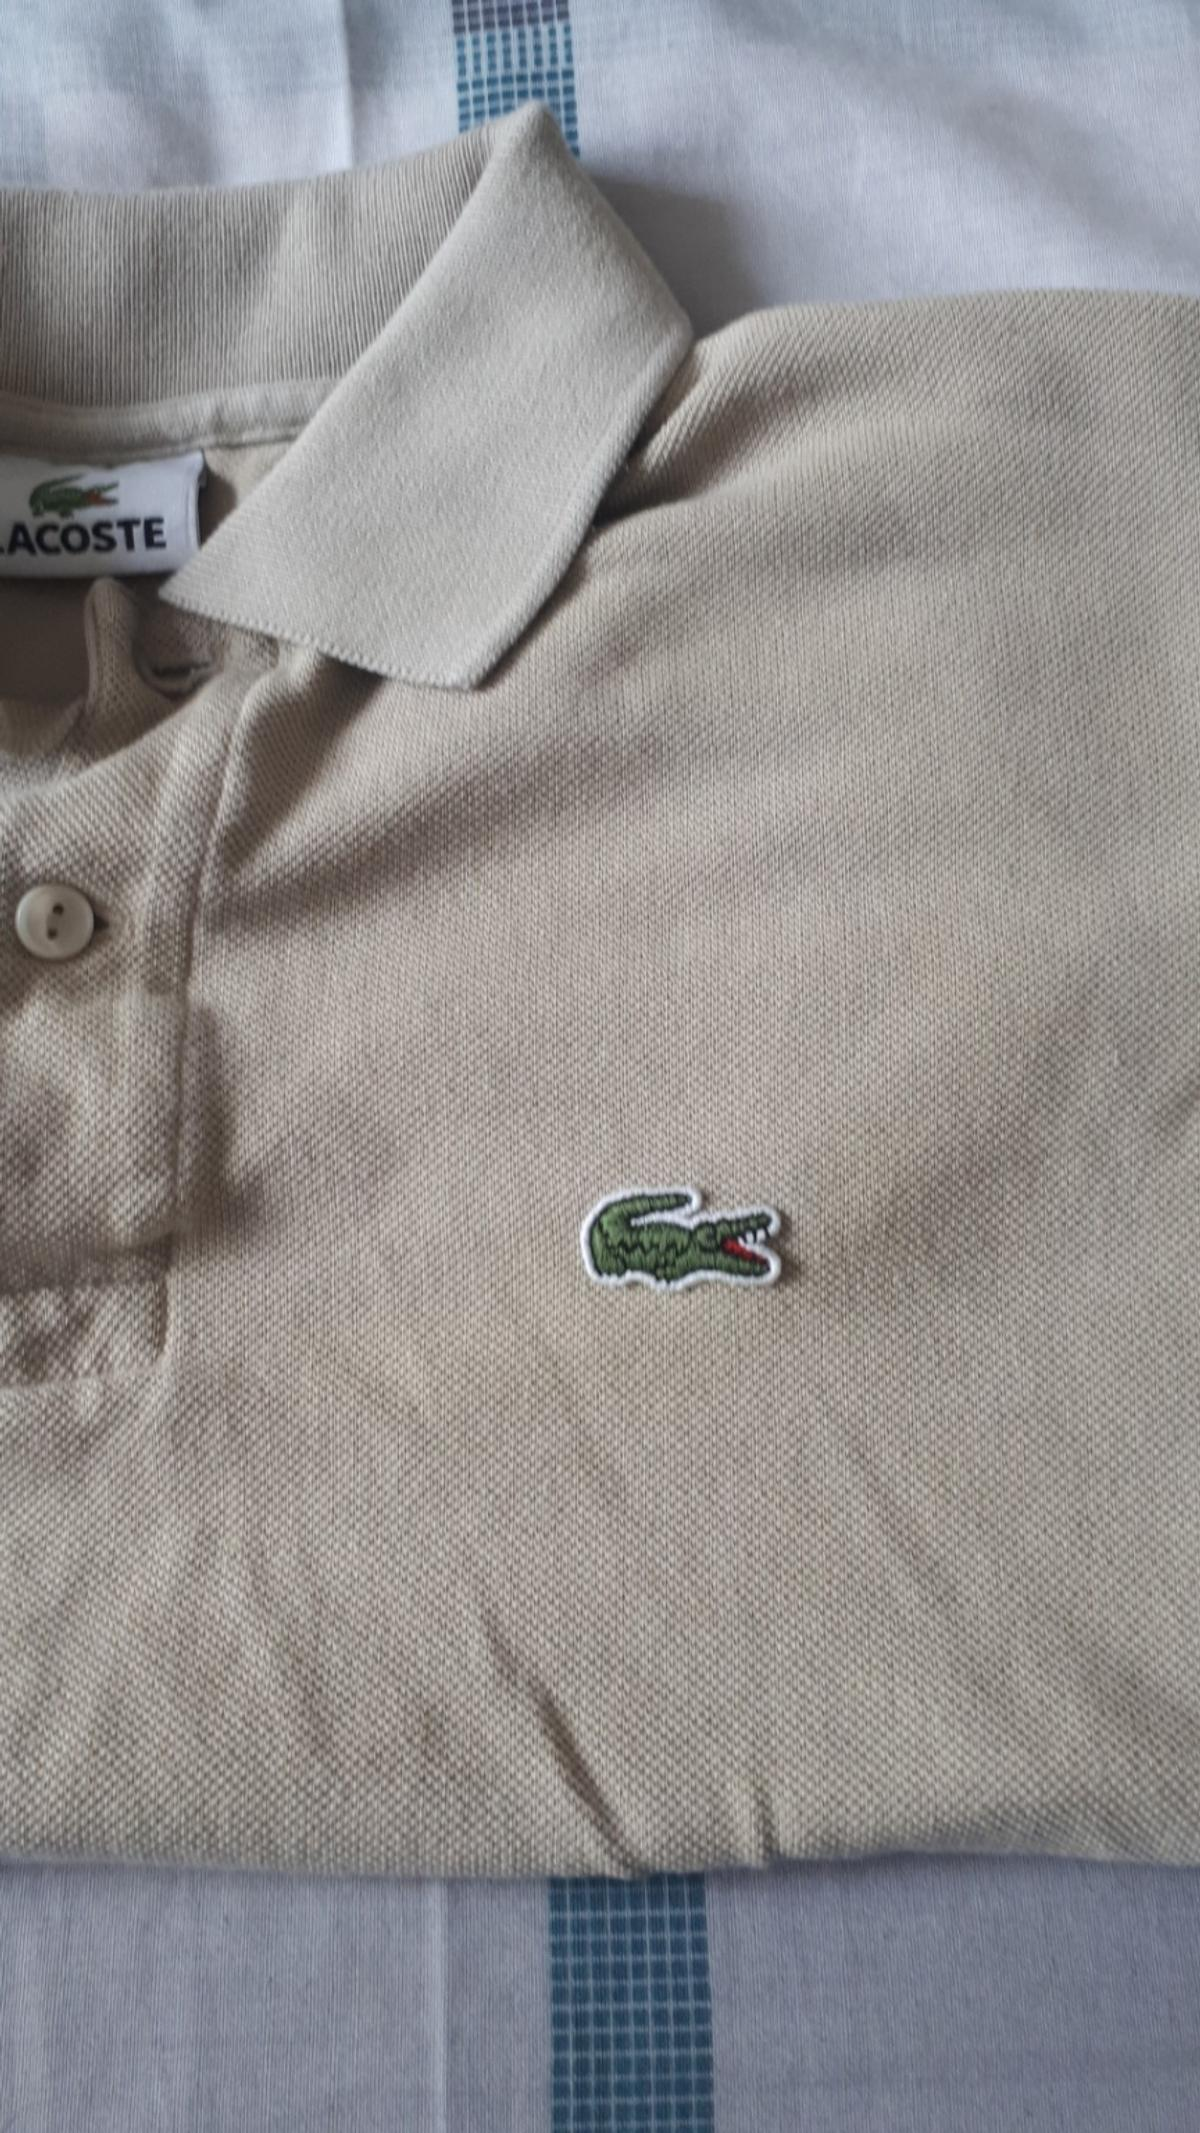 never worn lacoste polo shirt beige in colour. size medium.